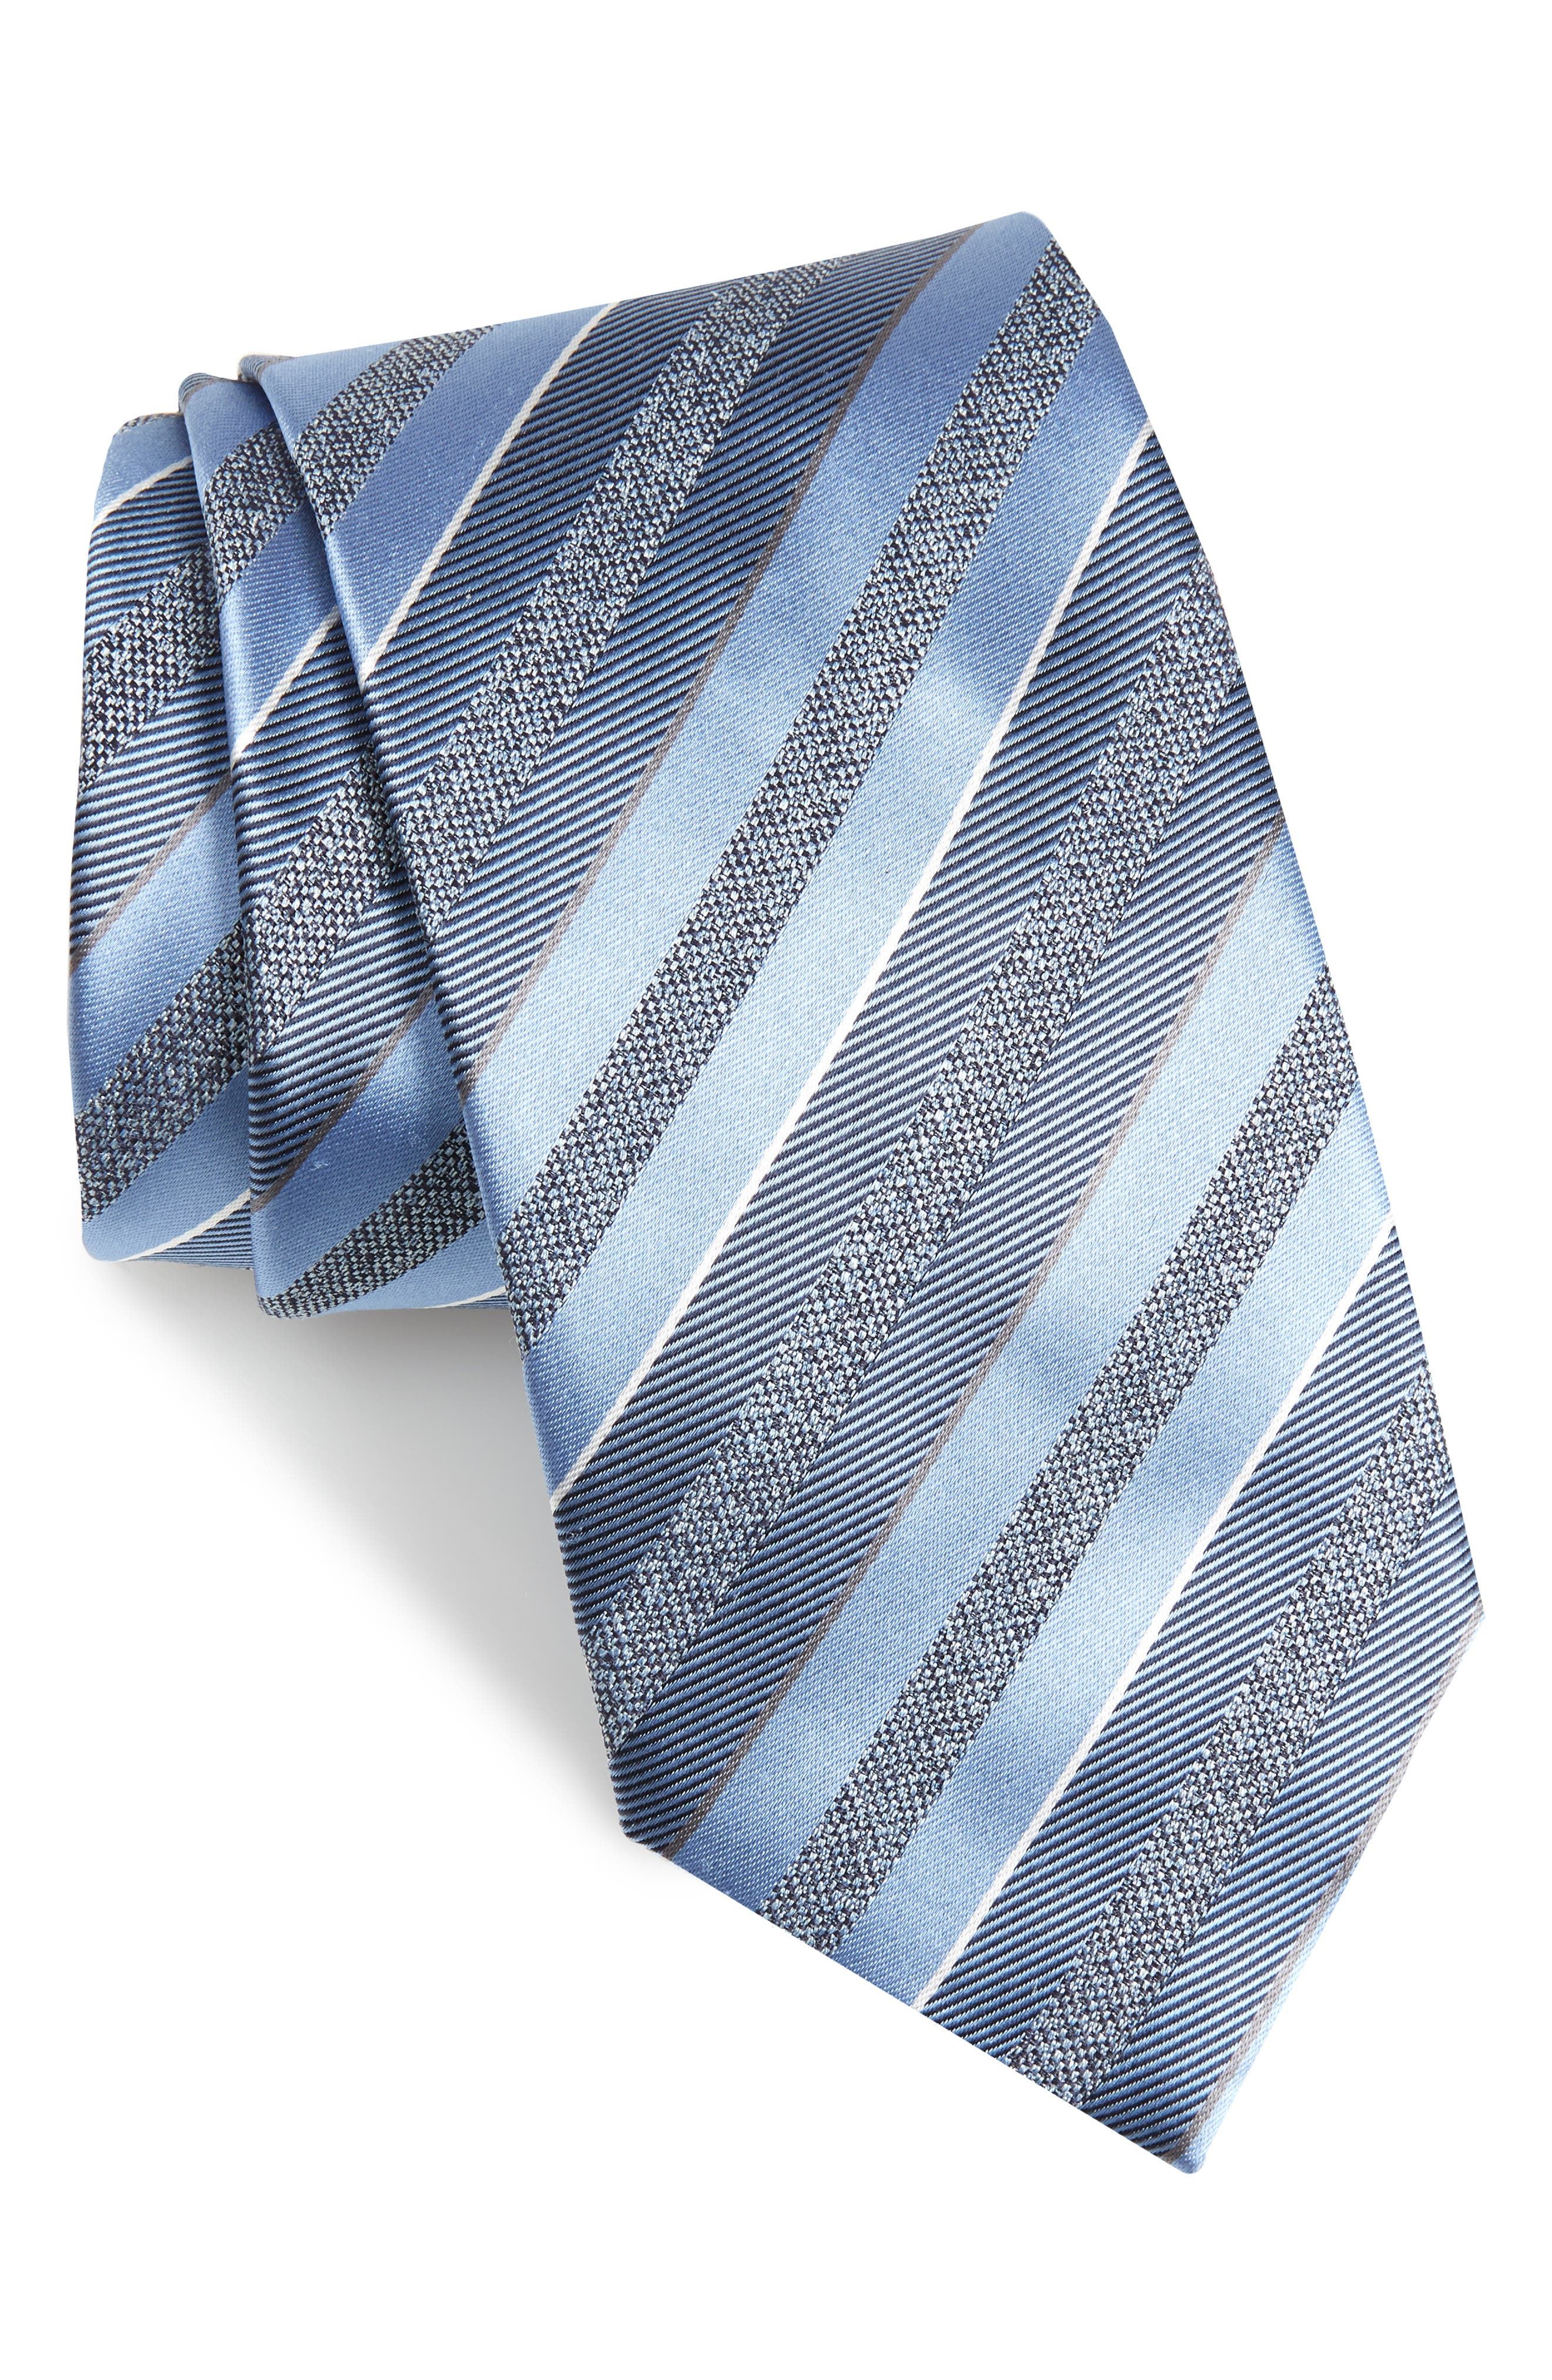 Stripe Silk Tie,                             Main thumbnail 1, color,                             451